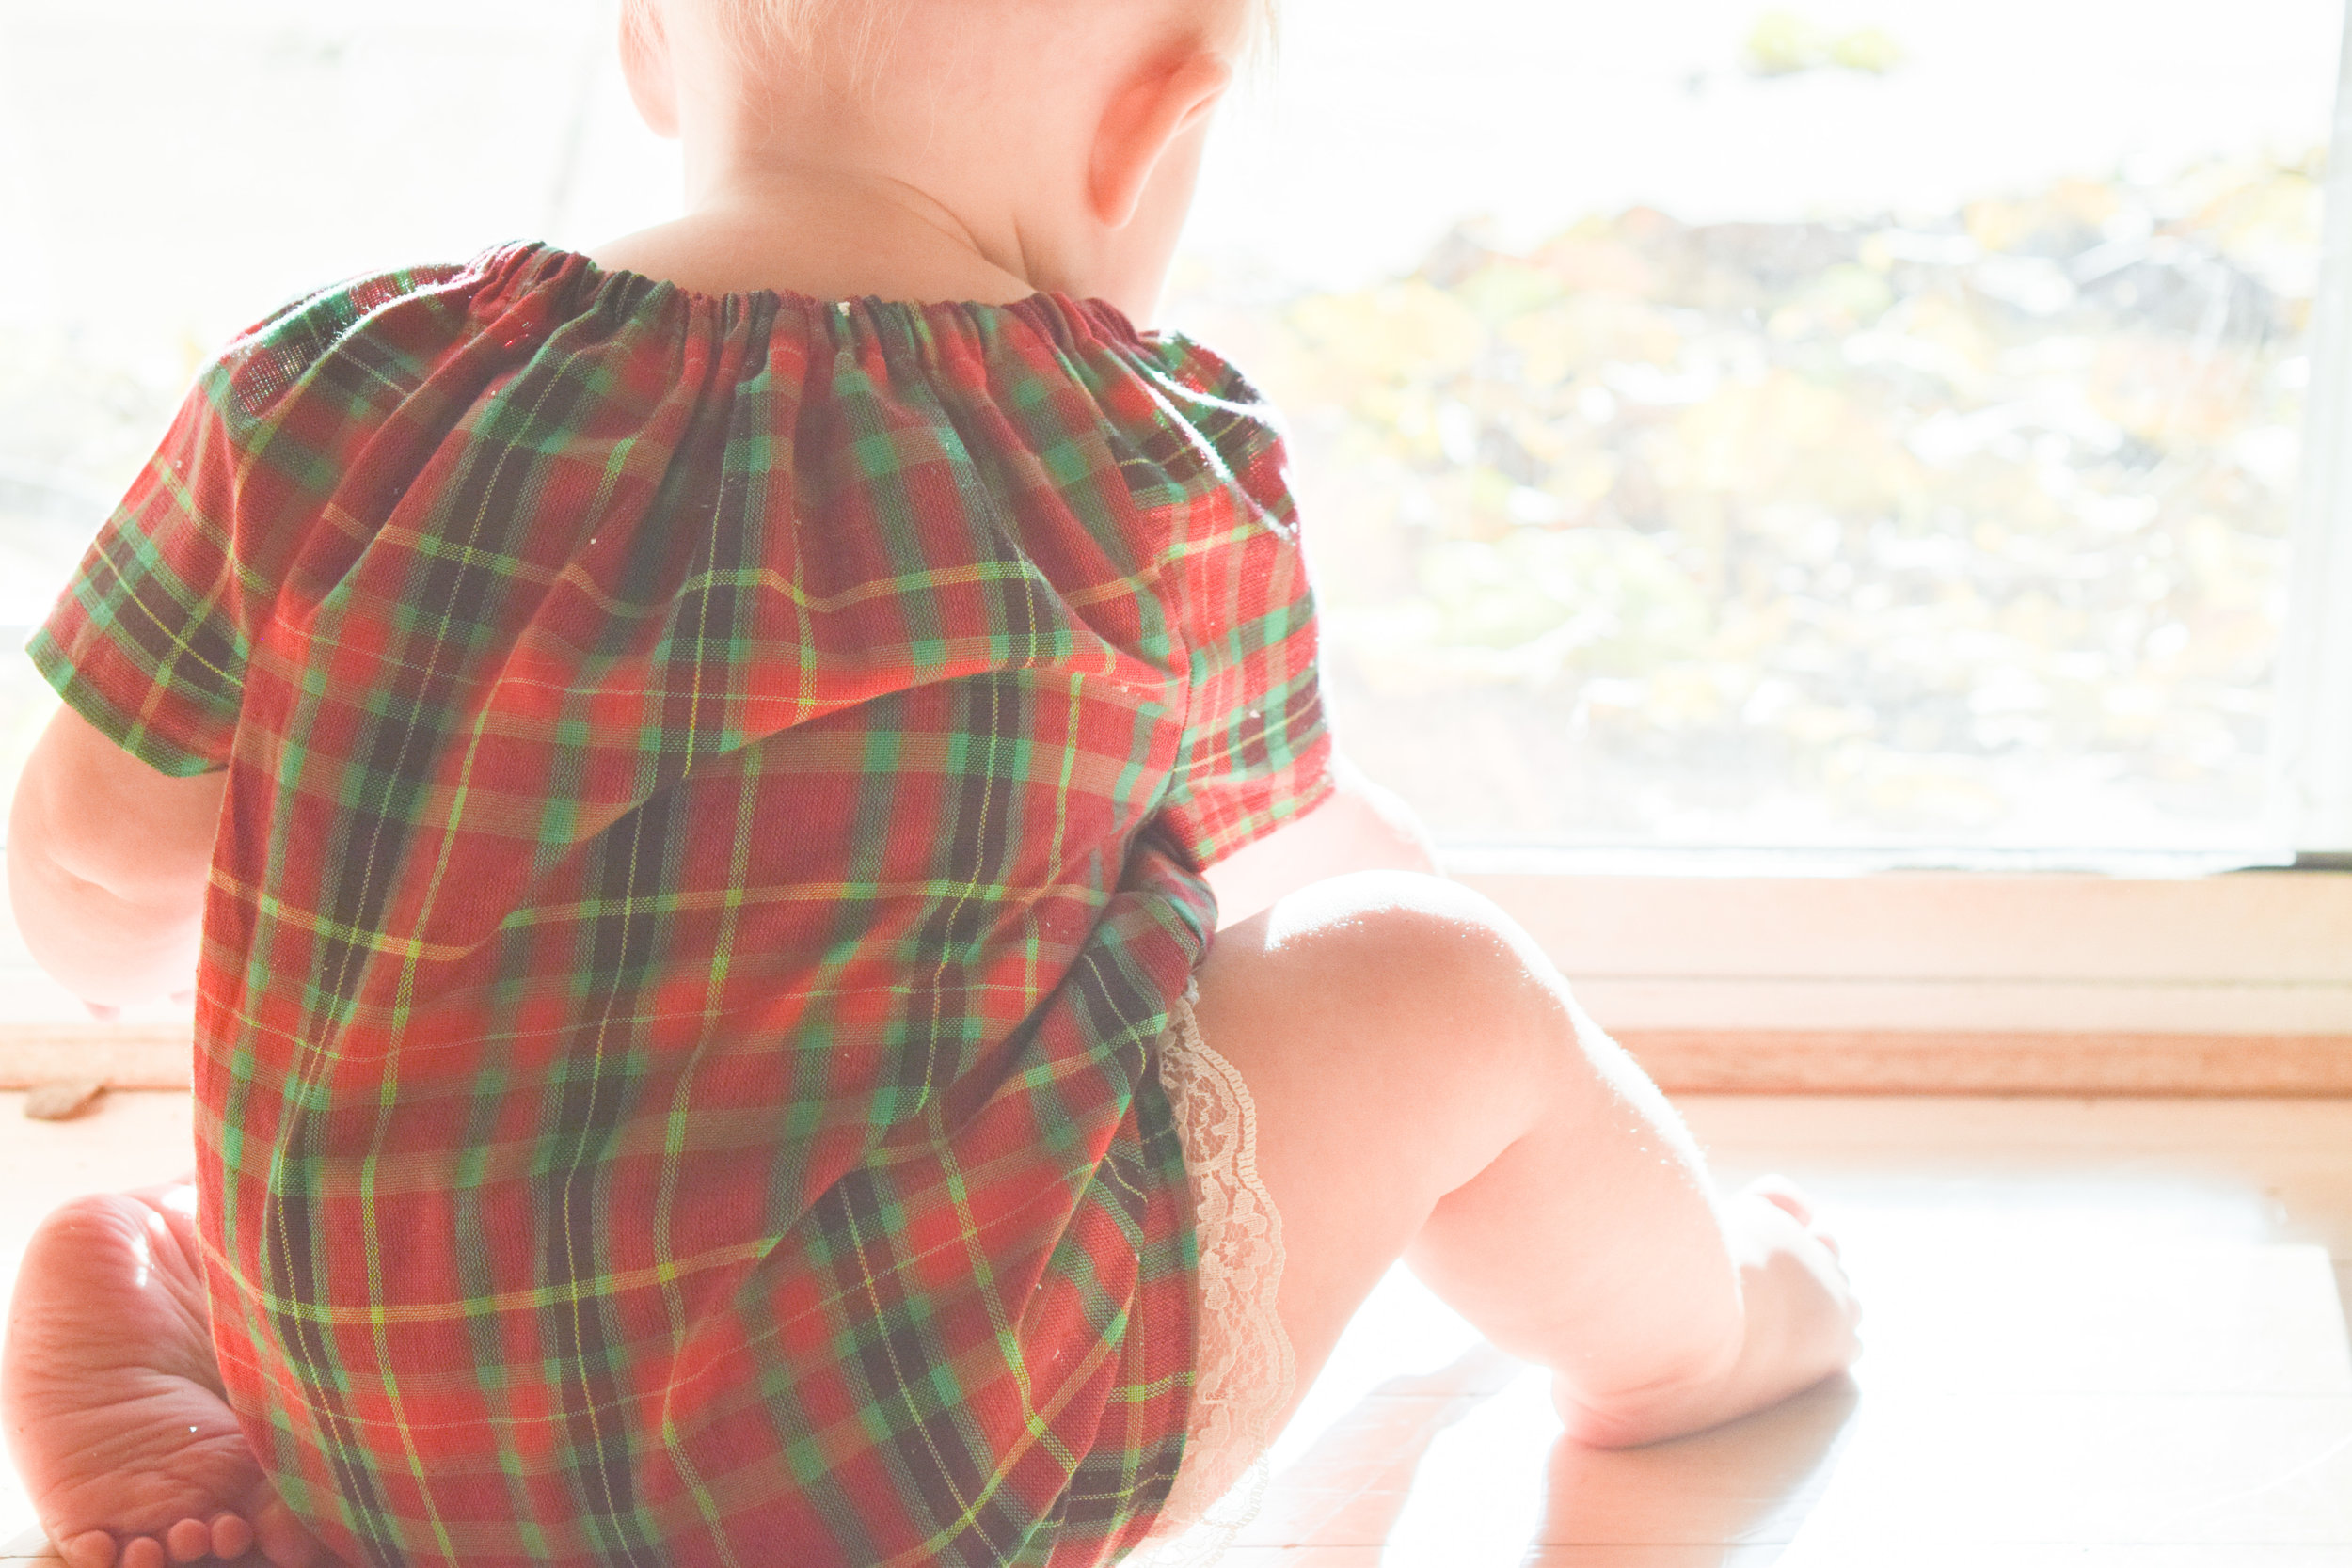 BABY FASHION | A Baby Christmas Dress - Plaid Baby Dress - Silver Baby Shoes - Dainty Baby Bow